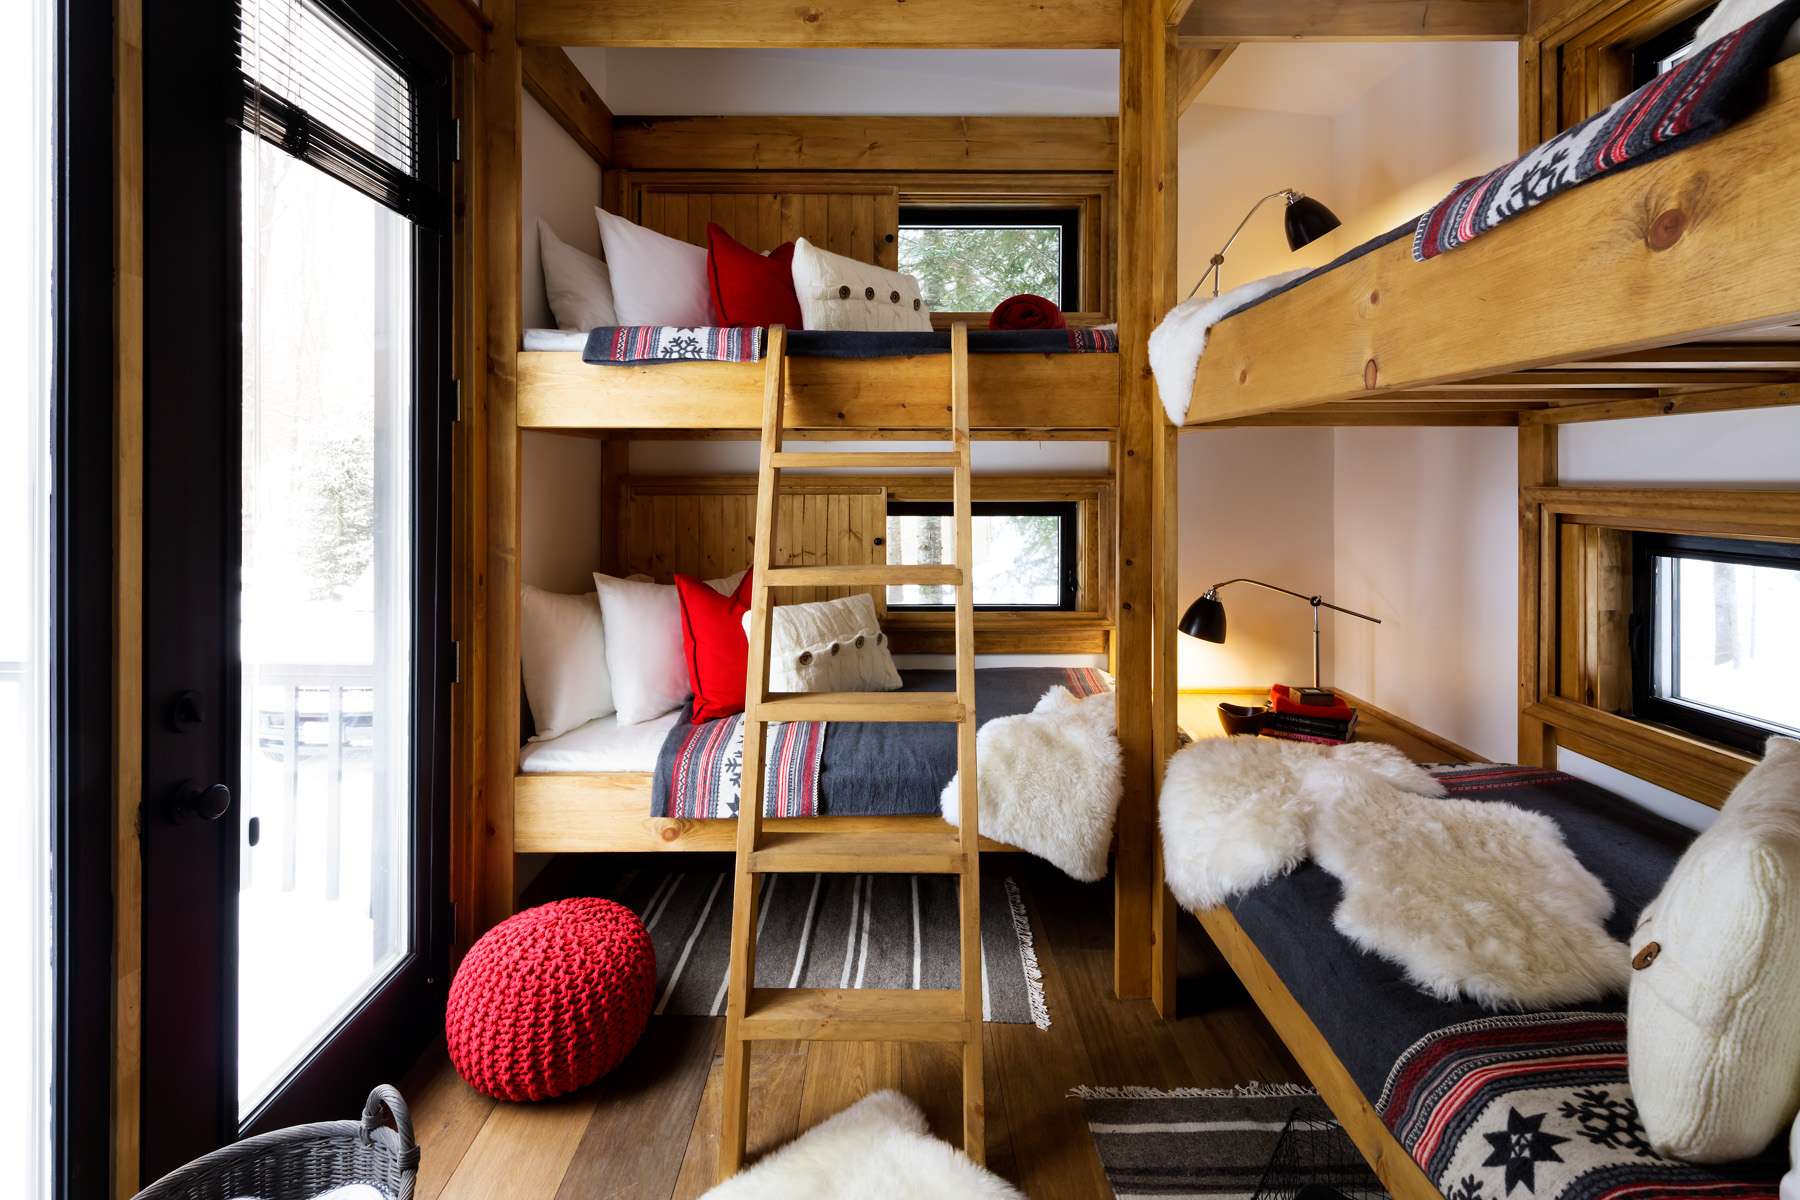 Our game of homes and bunkies for Bunkie interior designs